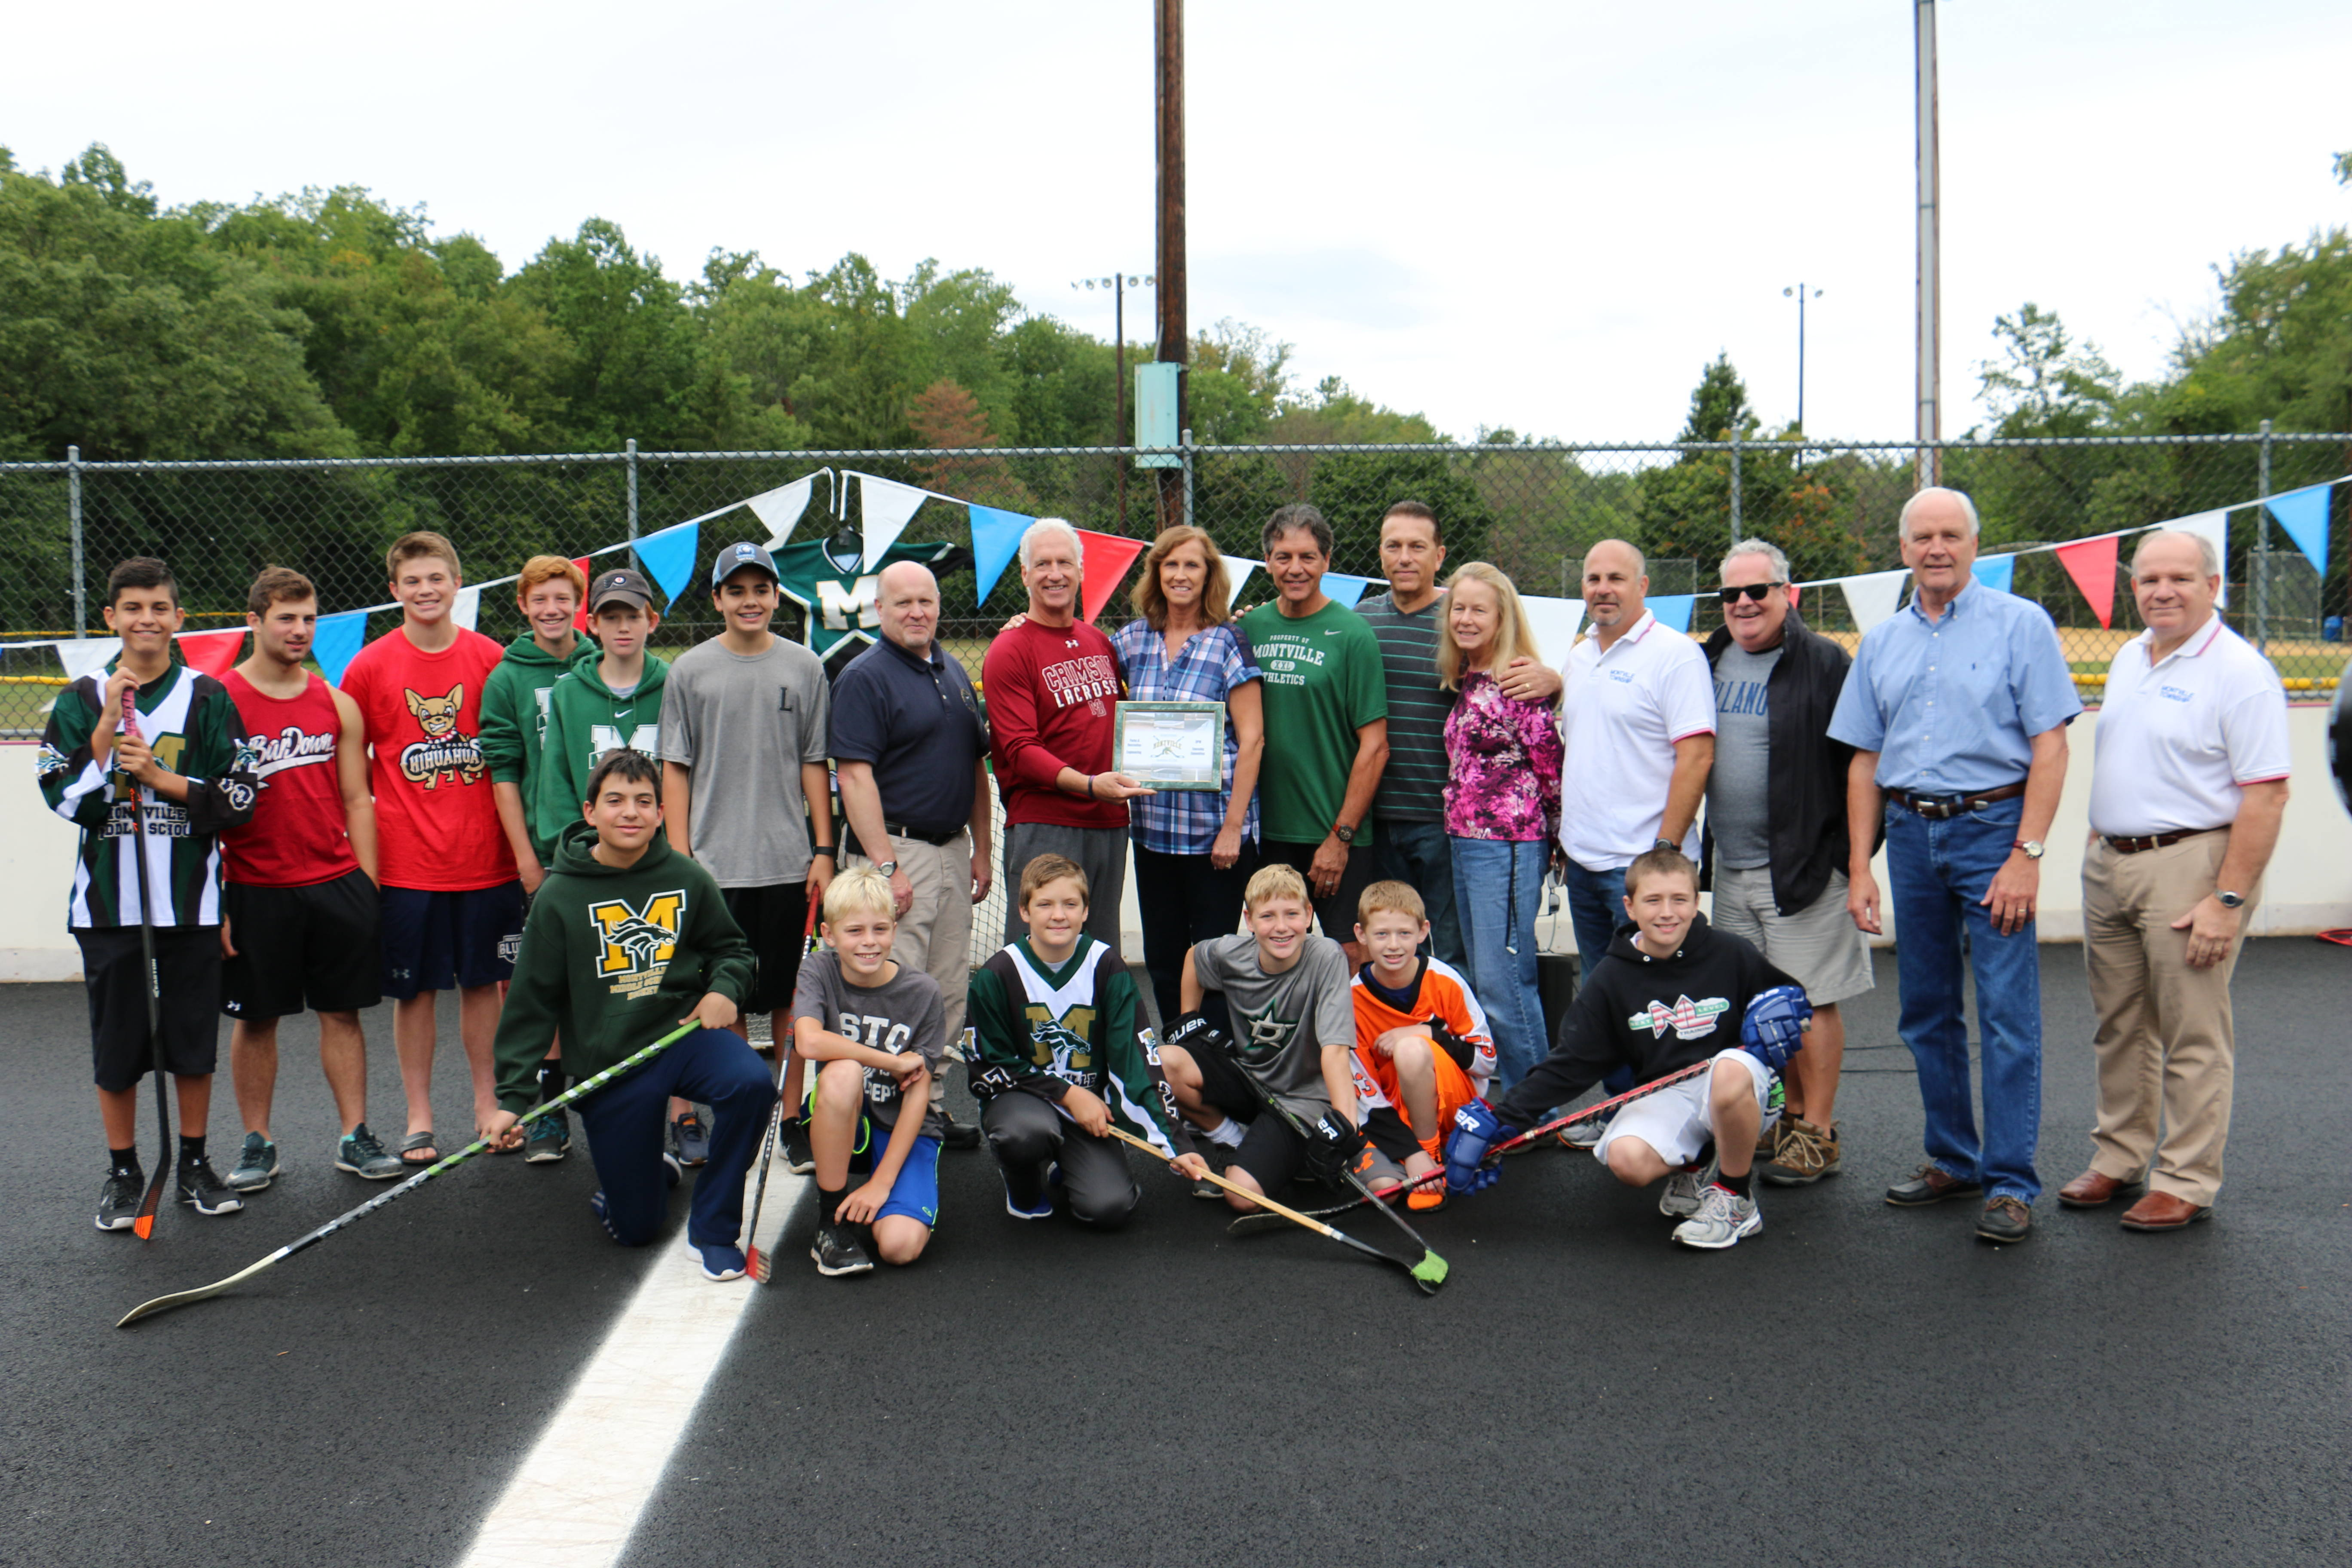 Roller skating rink kendall park nj - Official Opening Of Montville Township S New Roller And Street Hockey Rink Located At Masar Park Credits Hope White